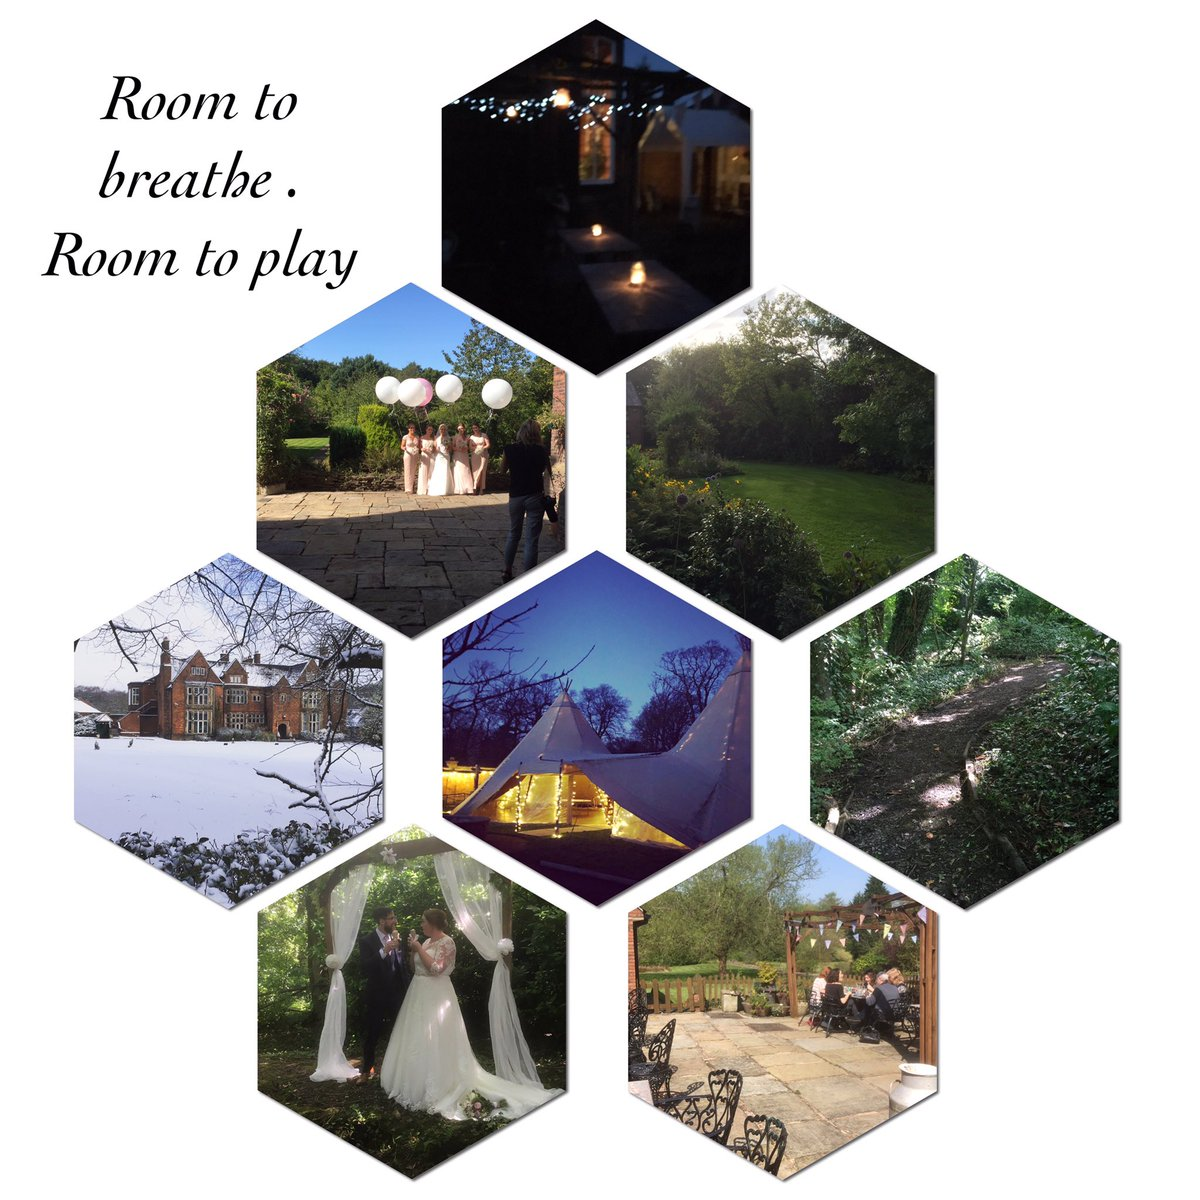 Ladies it's a #leapyear  - time to #propose? We still have a few #specialoffer dates left this year for your #wedding whatever style it may be